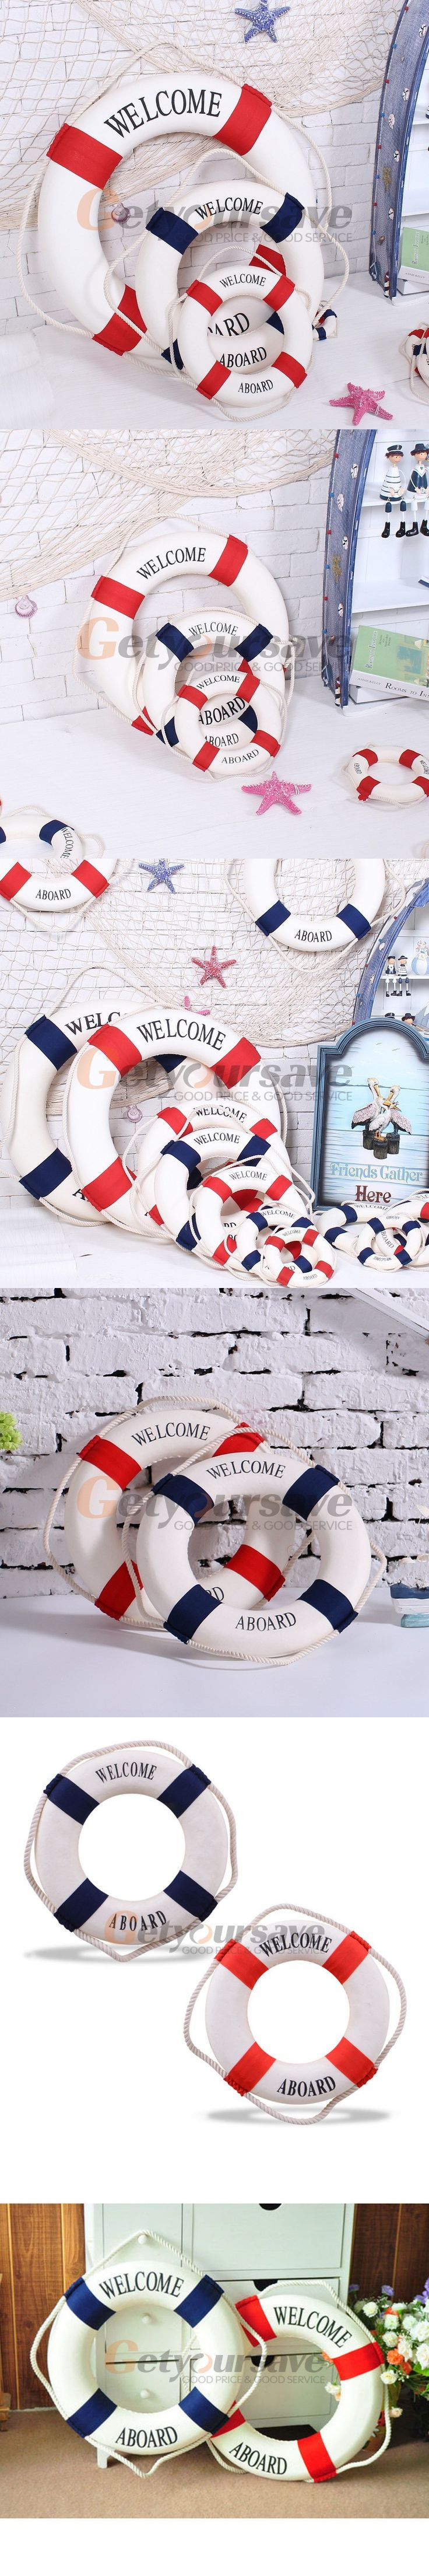 Welcome aboard boat ships life ring clock - New Lifering Lifebuoy Rope Hang Welcome Sign Beach Home Wall Nautical Decor Lifebuoy Beach Homes And Decor